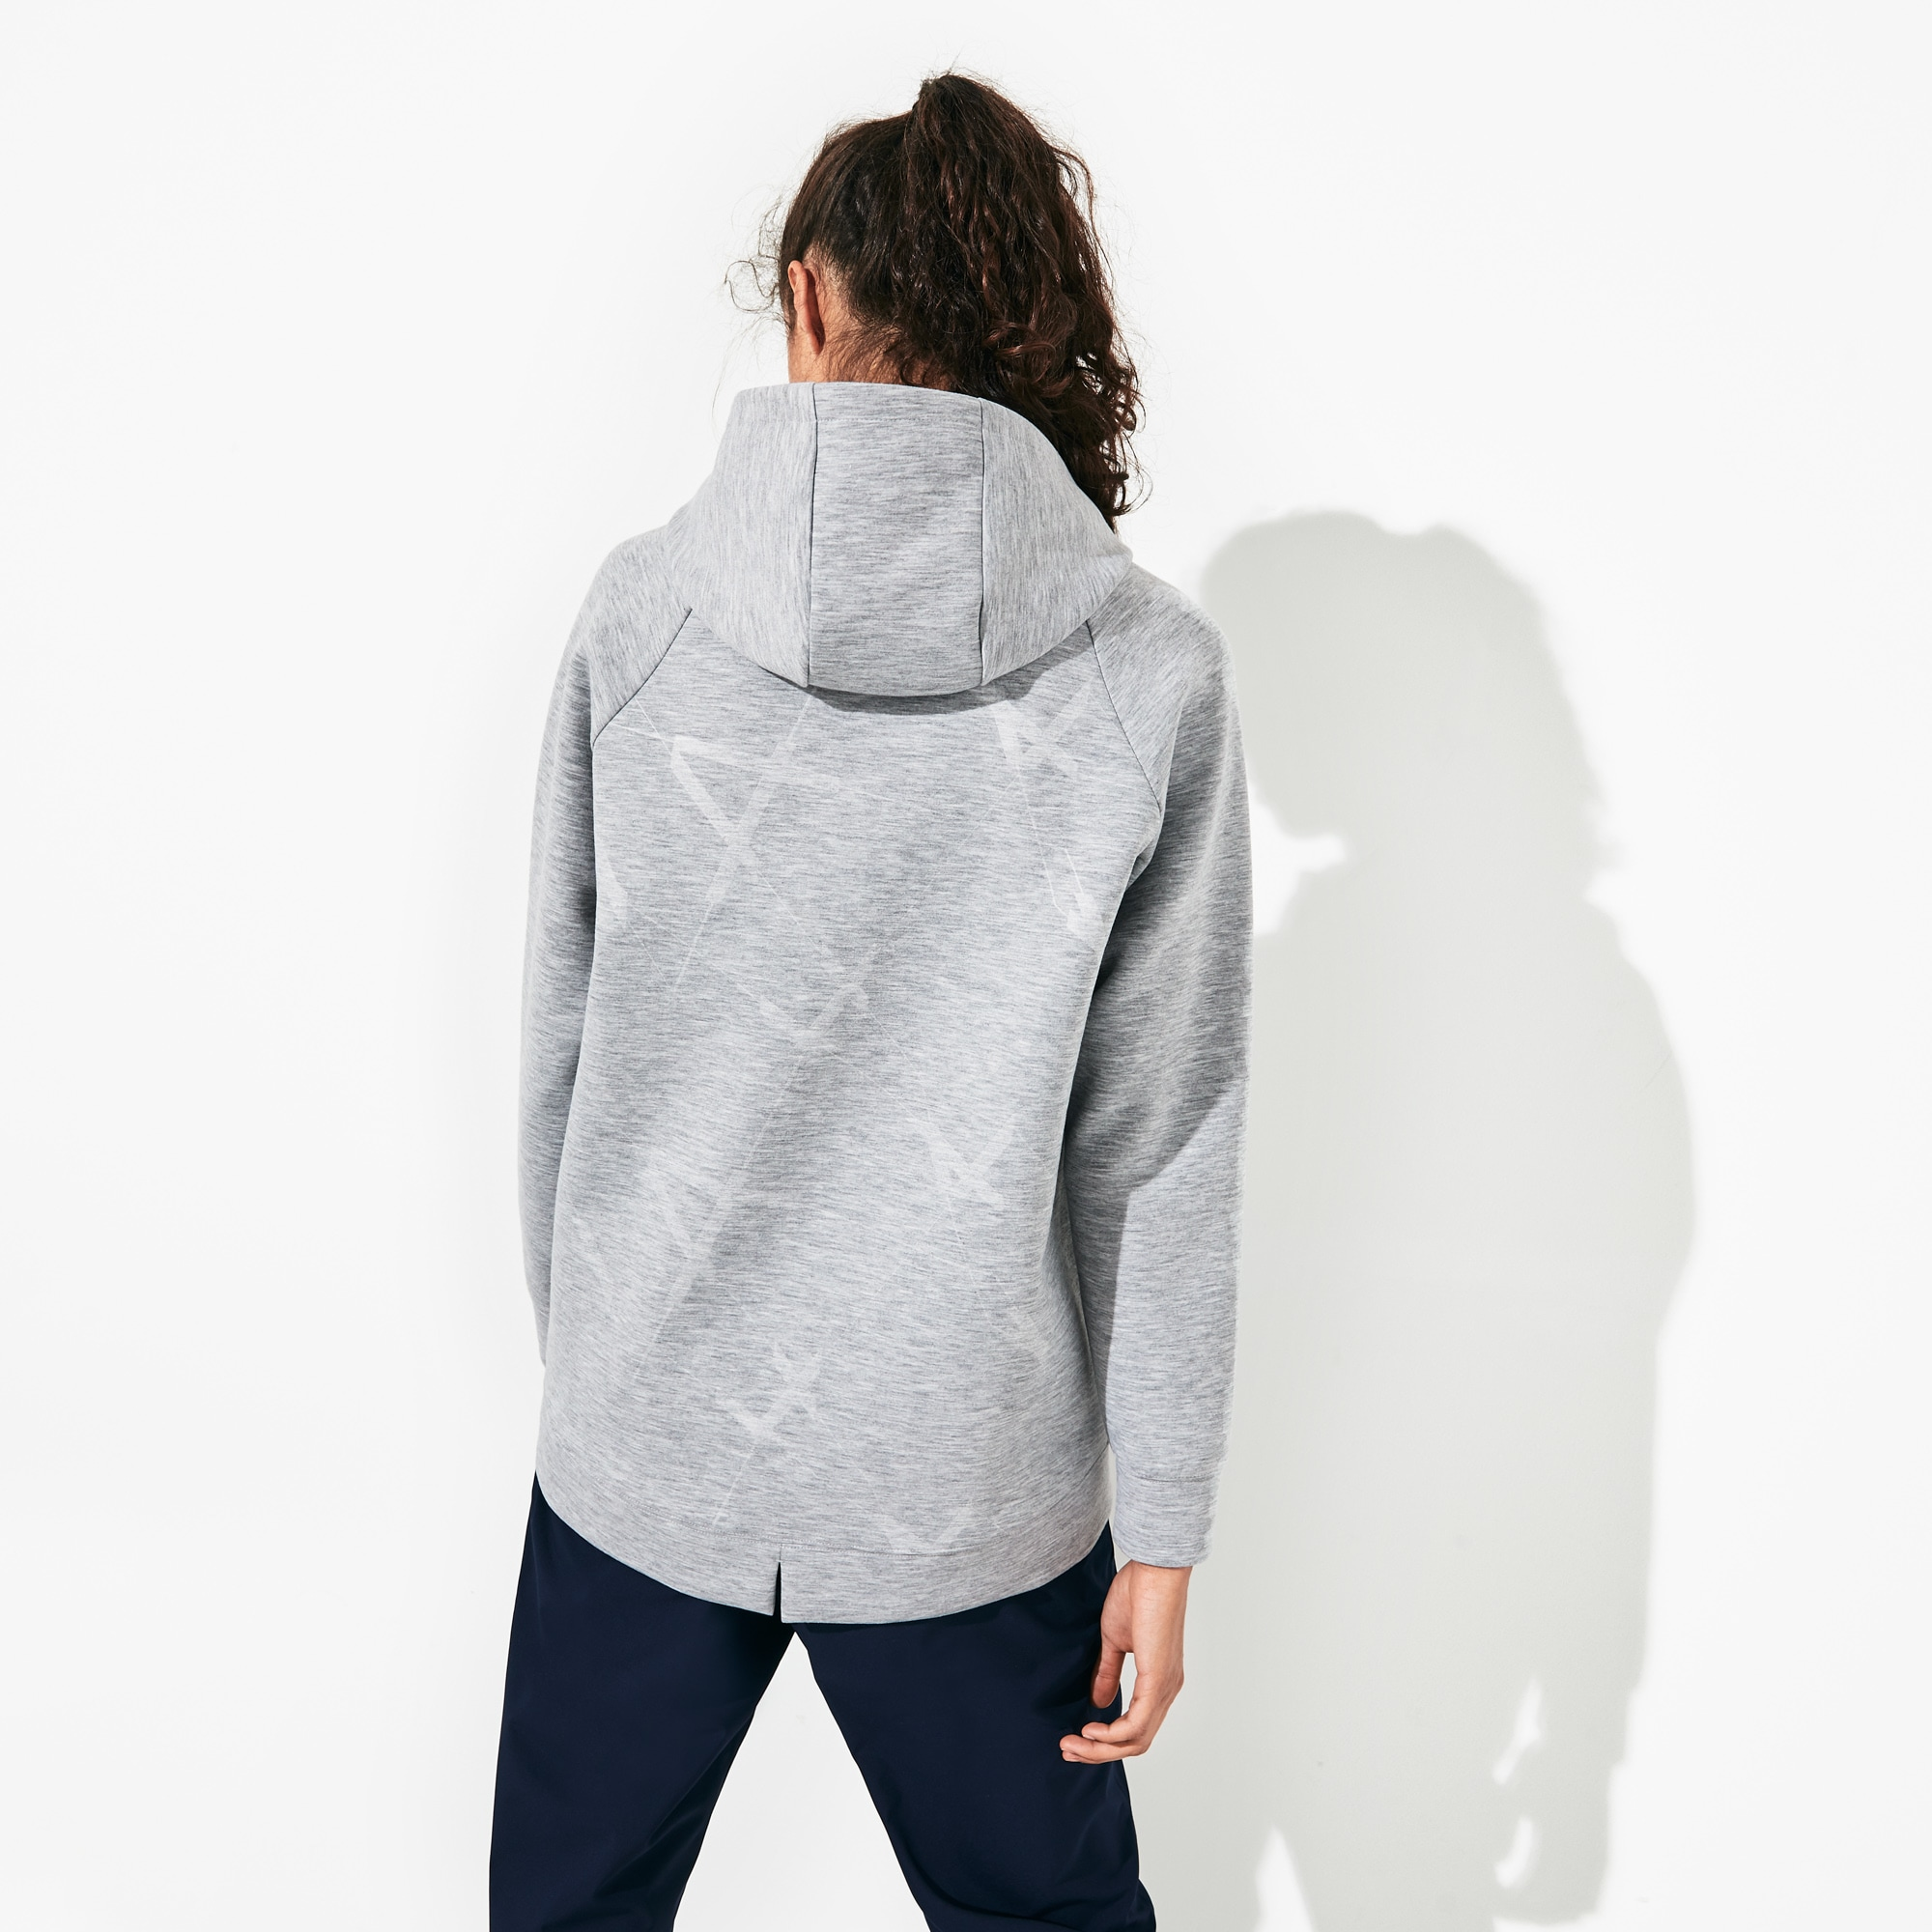 Women's Lacoste SPORT Hooded Print Fleece Tennis Sweatshirt